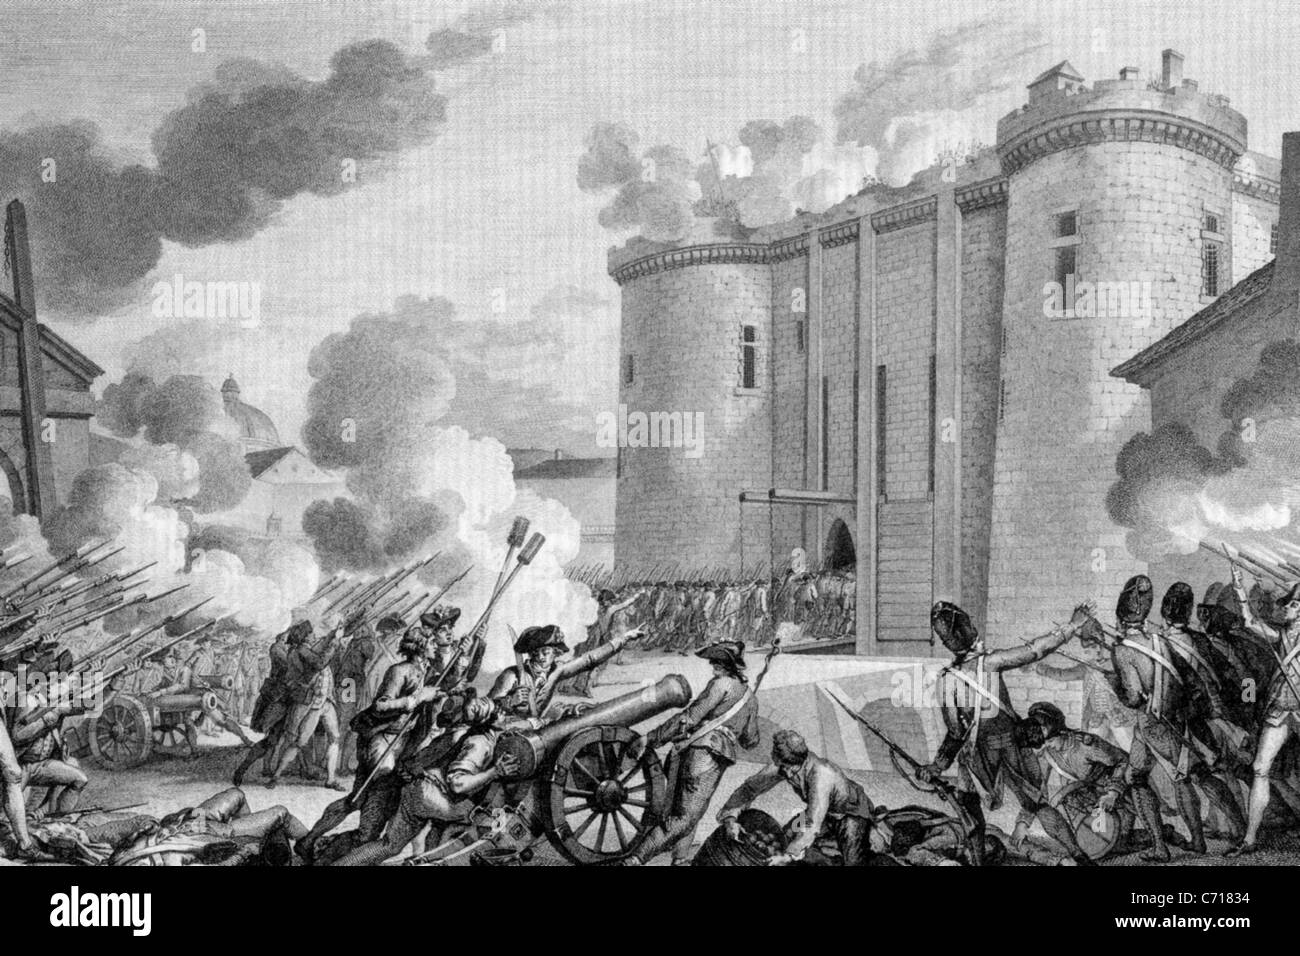 STORMING OF THE BASTILLE in Paris on 14 July 1789